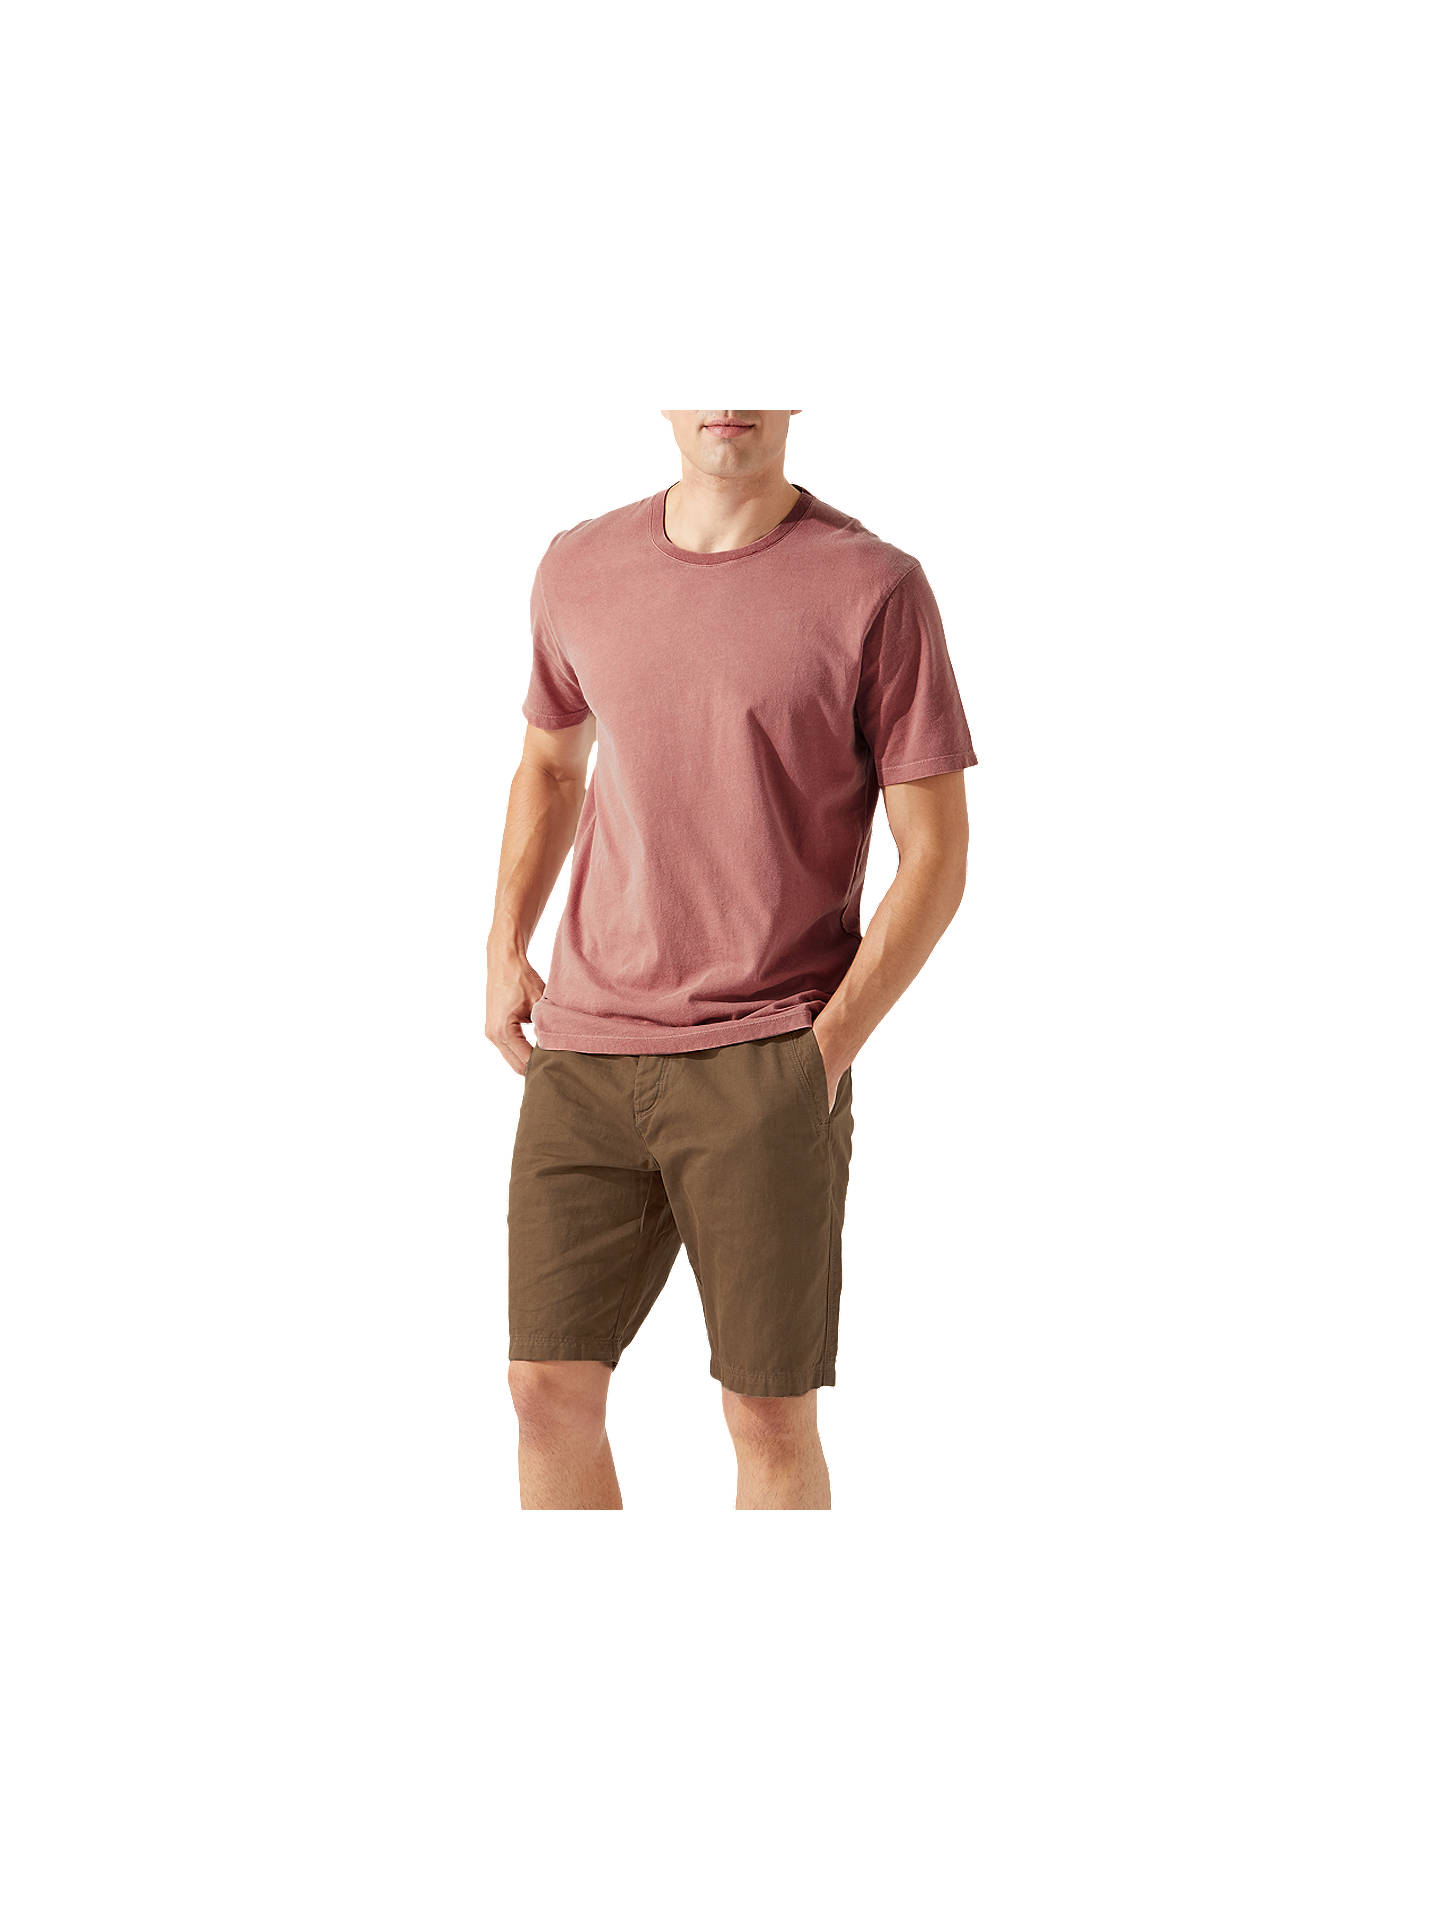 BuyJigsaw Garment Dye Crew Neck T-Shirt, Dusty Pink, S Online at johnlewis.com